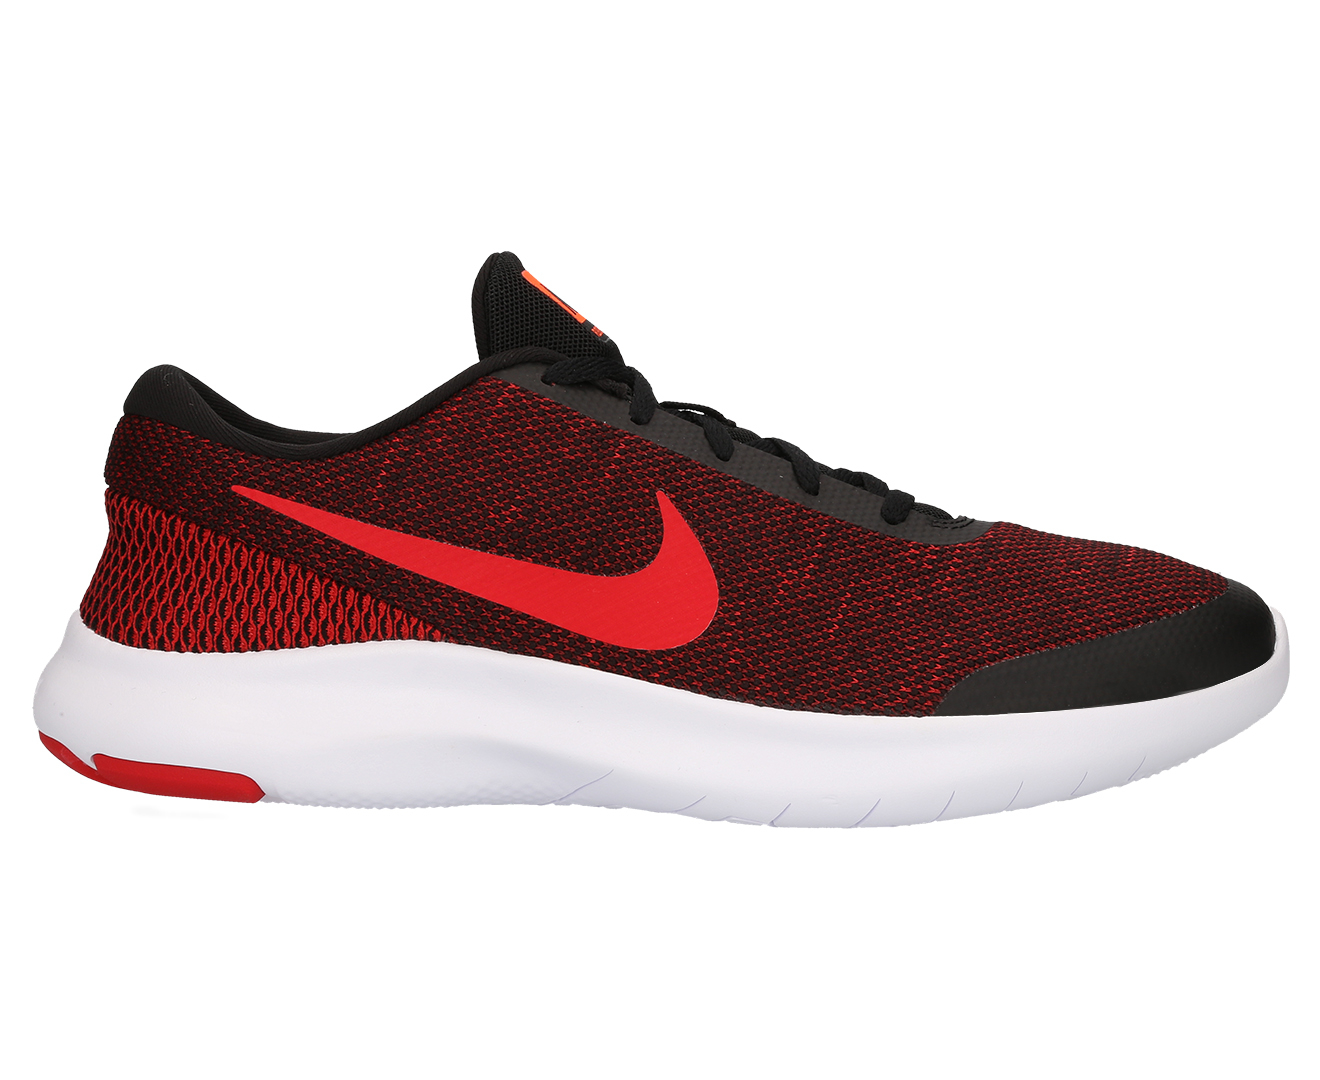 Nike Flex Experience RN 7 Mens 908985 006 Black Gym Red Running Shoes NEW IN BOX